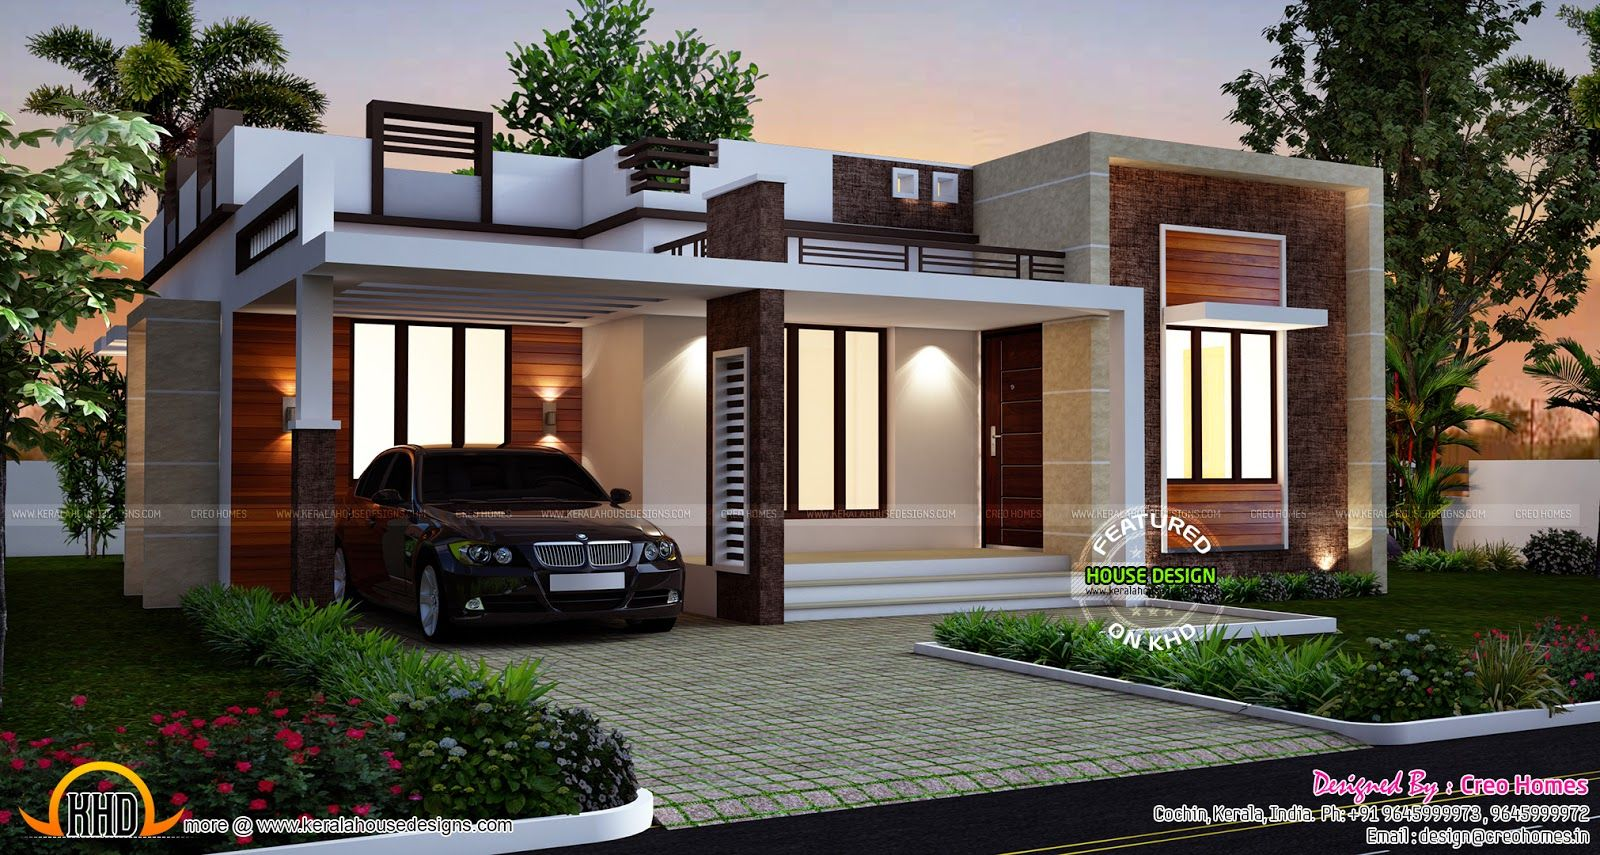 Small house plans kerala model House style Pinterest Small